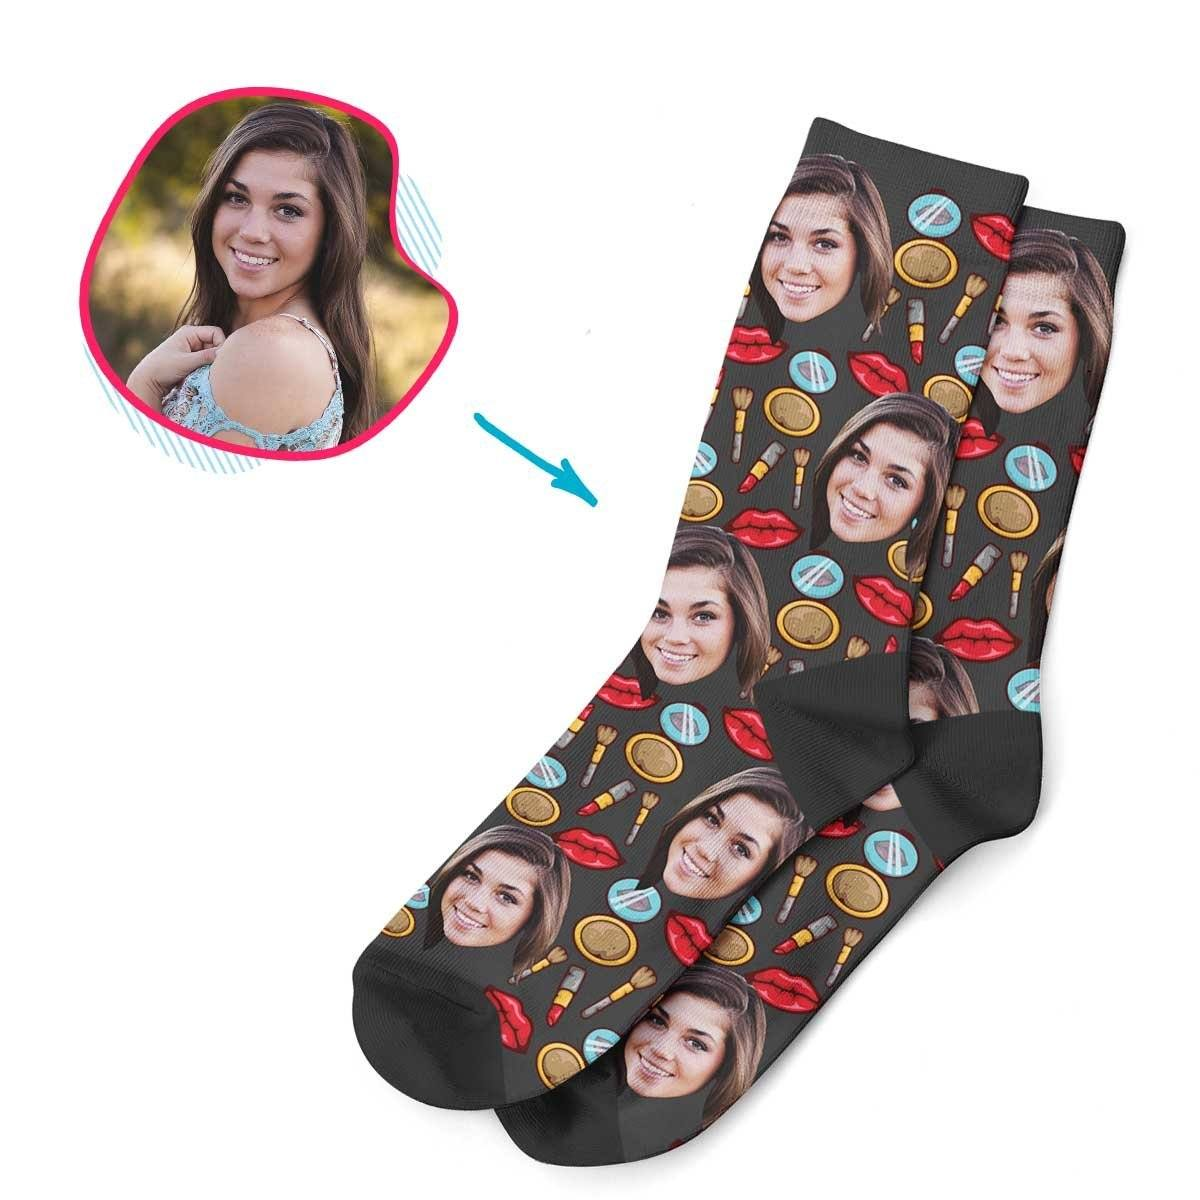 Dark Makeup personalized socks with photo of face printed on them